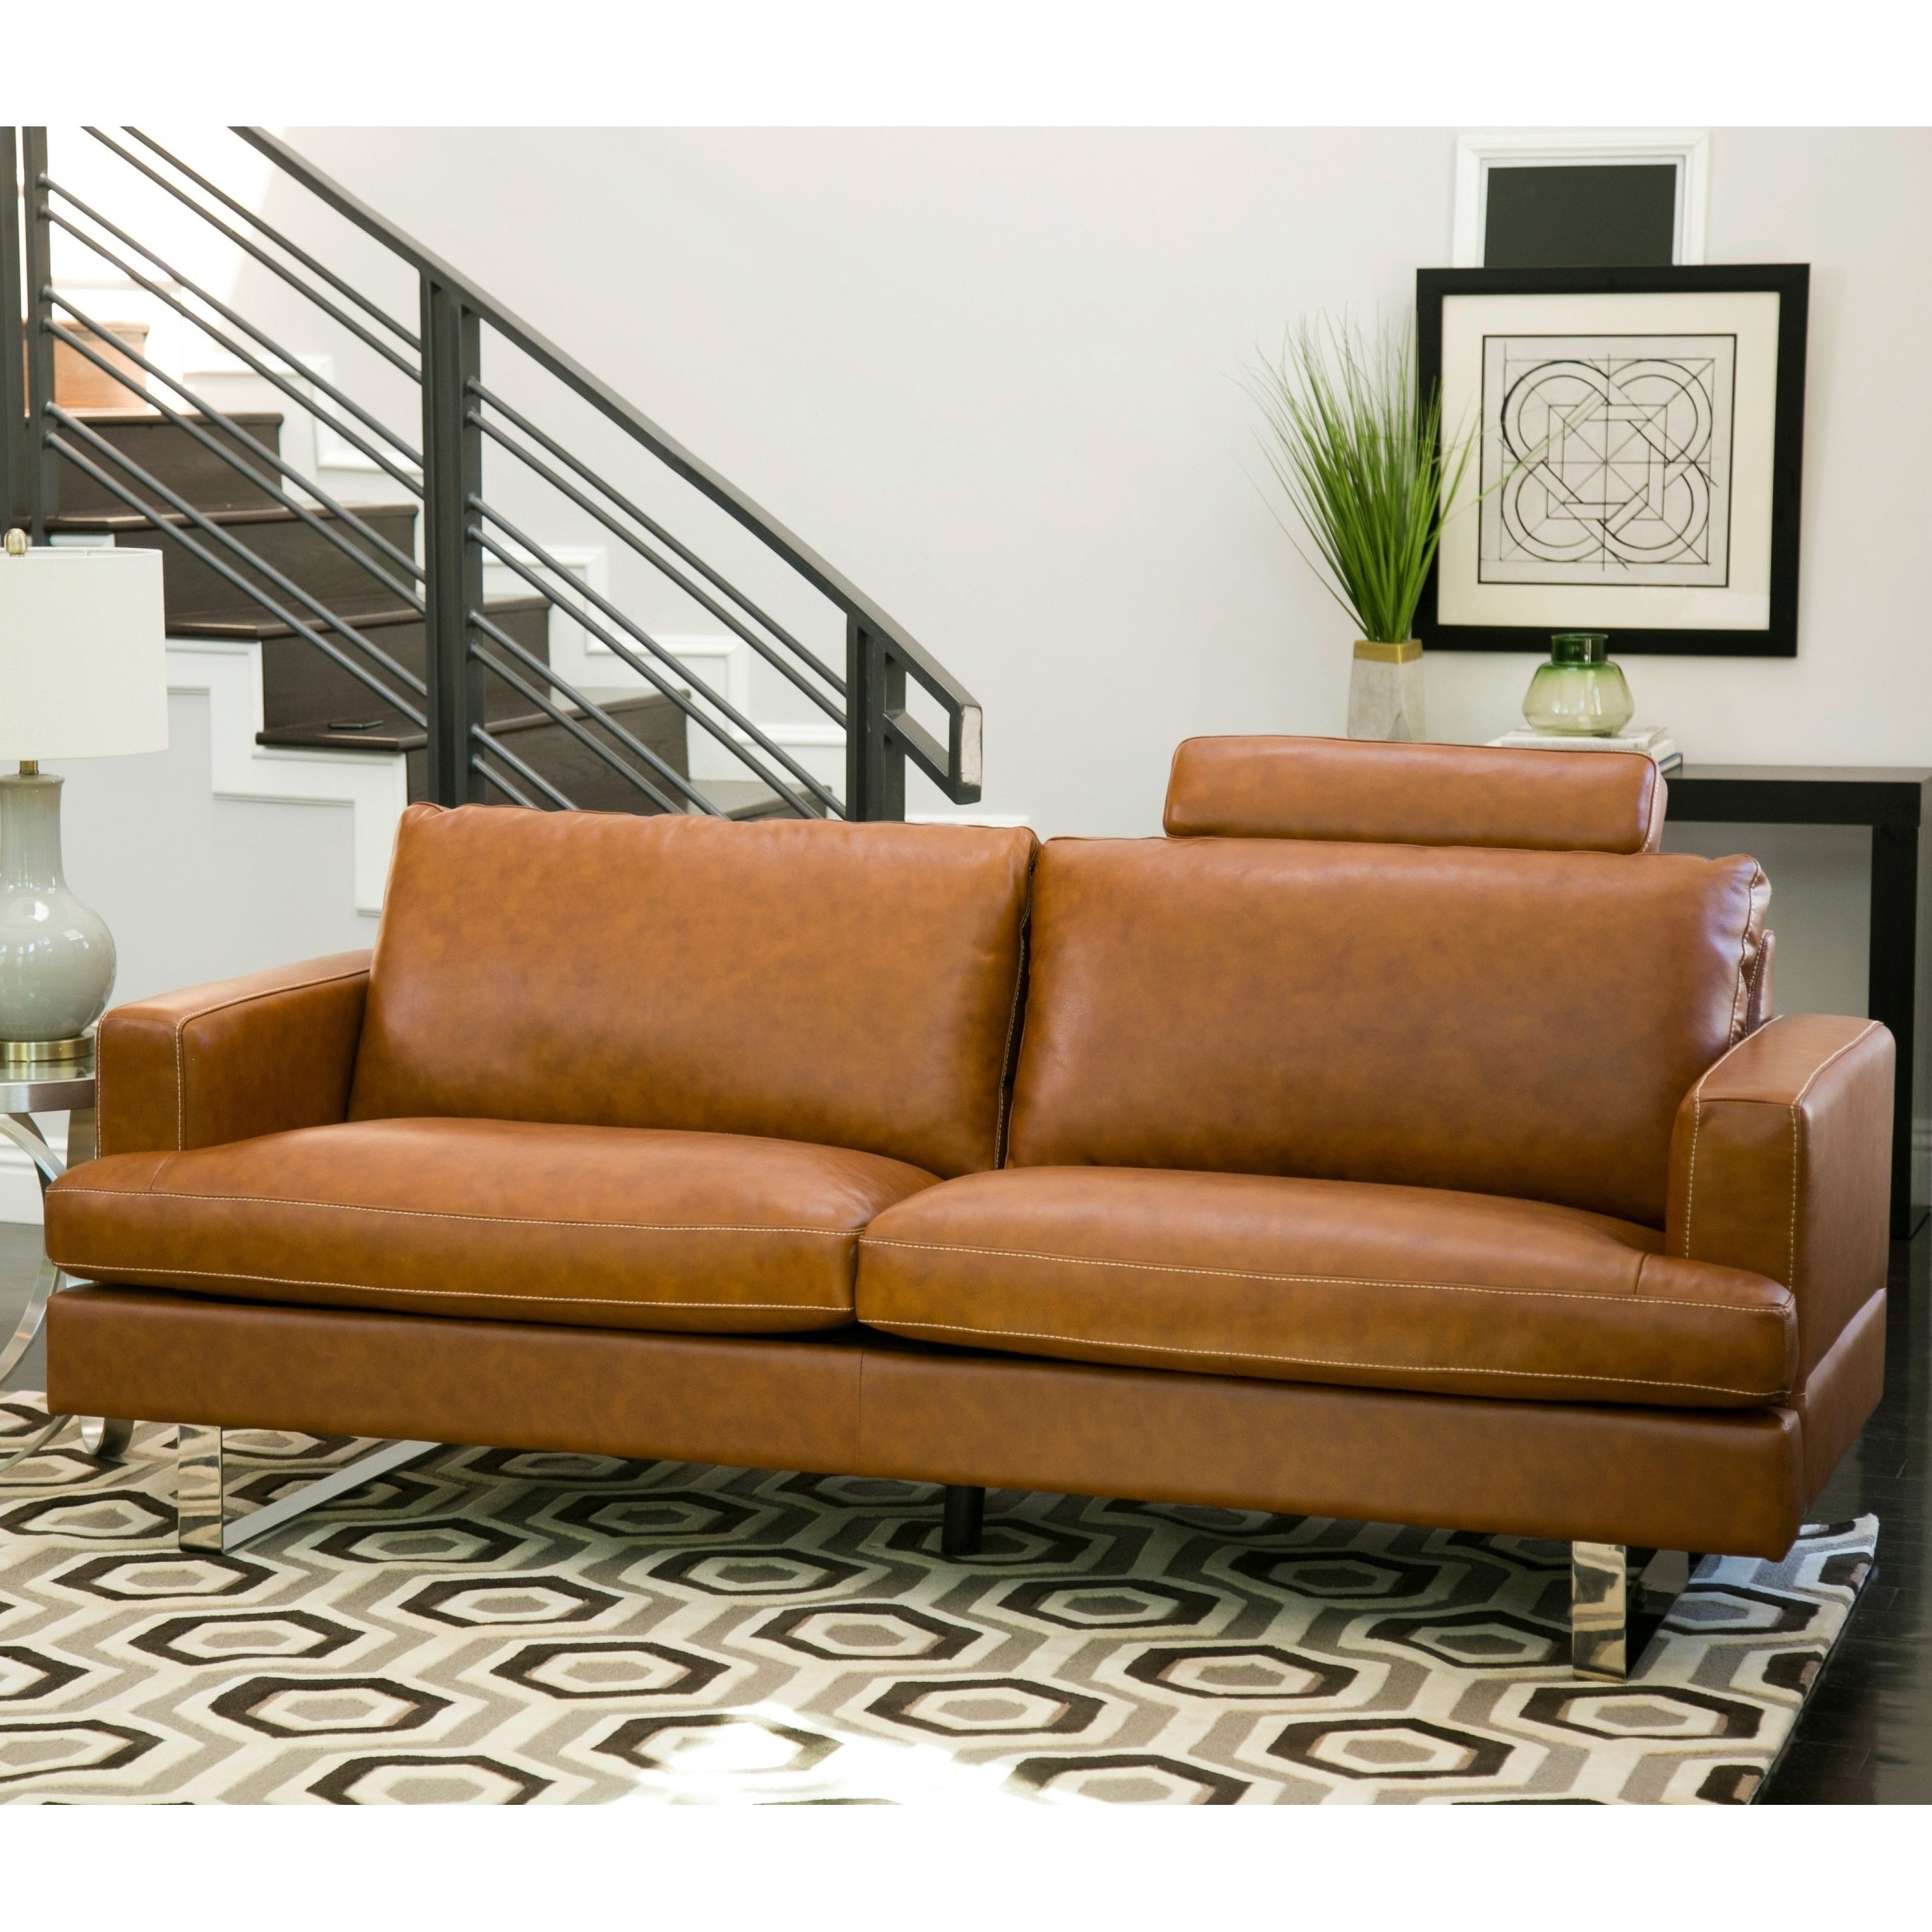 Shop Abbyson Edison Mid Century Camel Leather Sofa   On Sale   Free  Shipping Today   Overstock.com   16005095